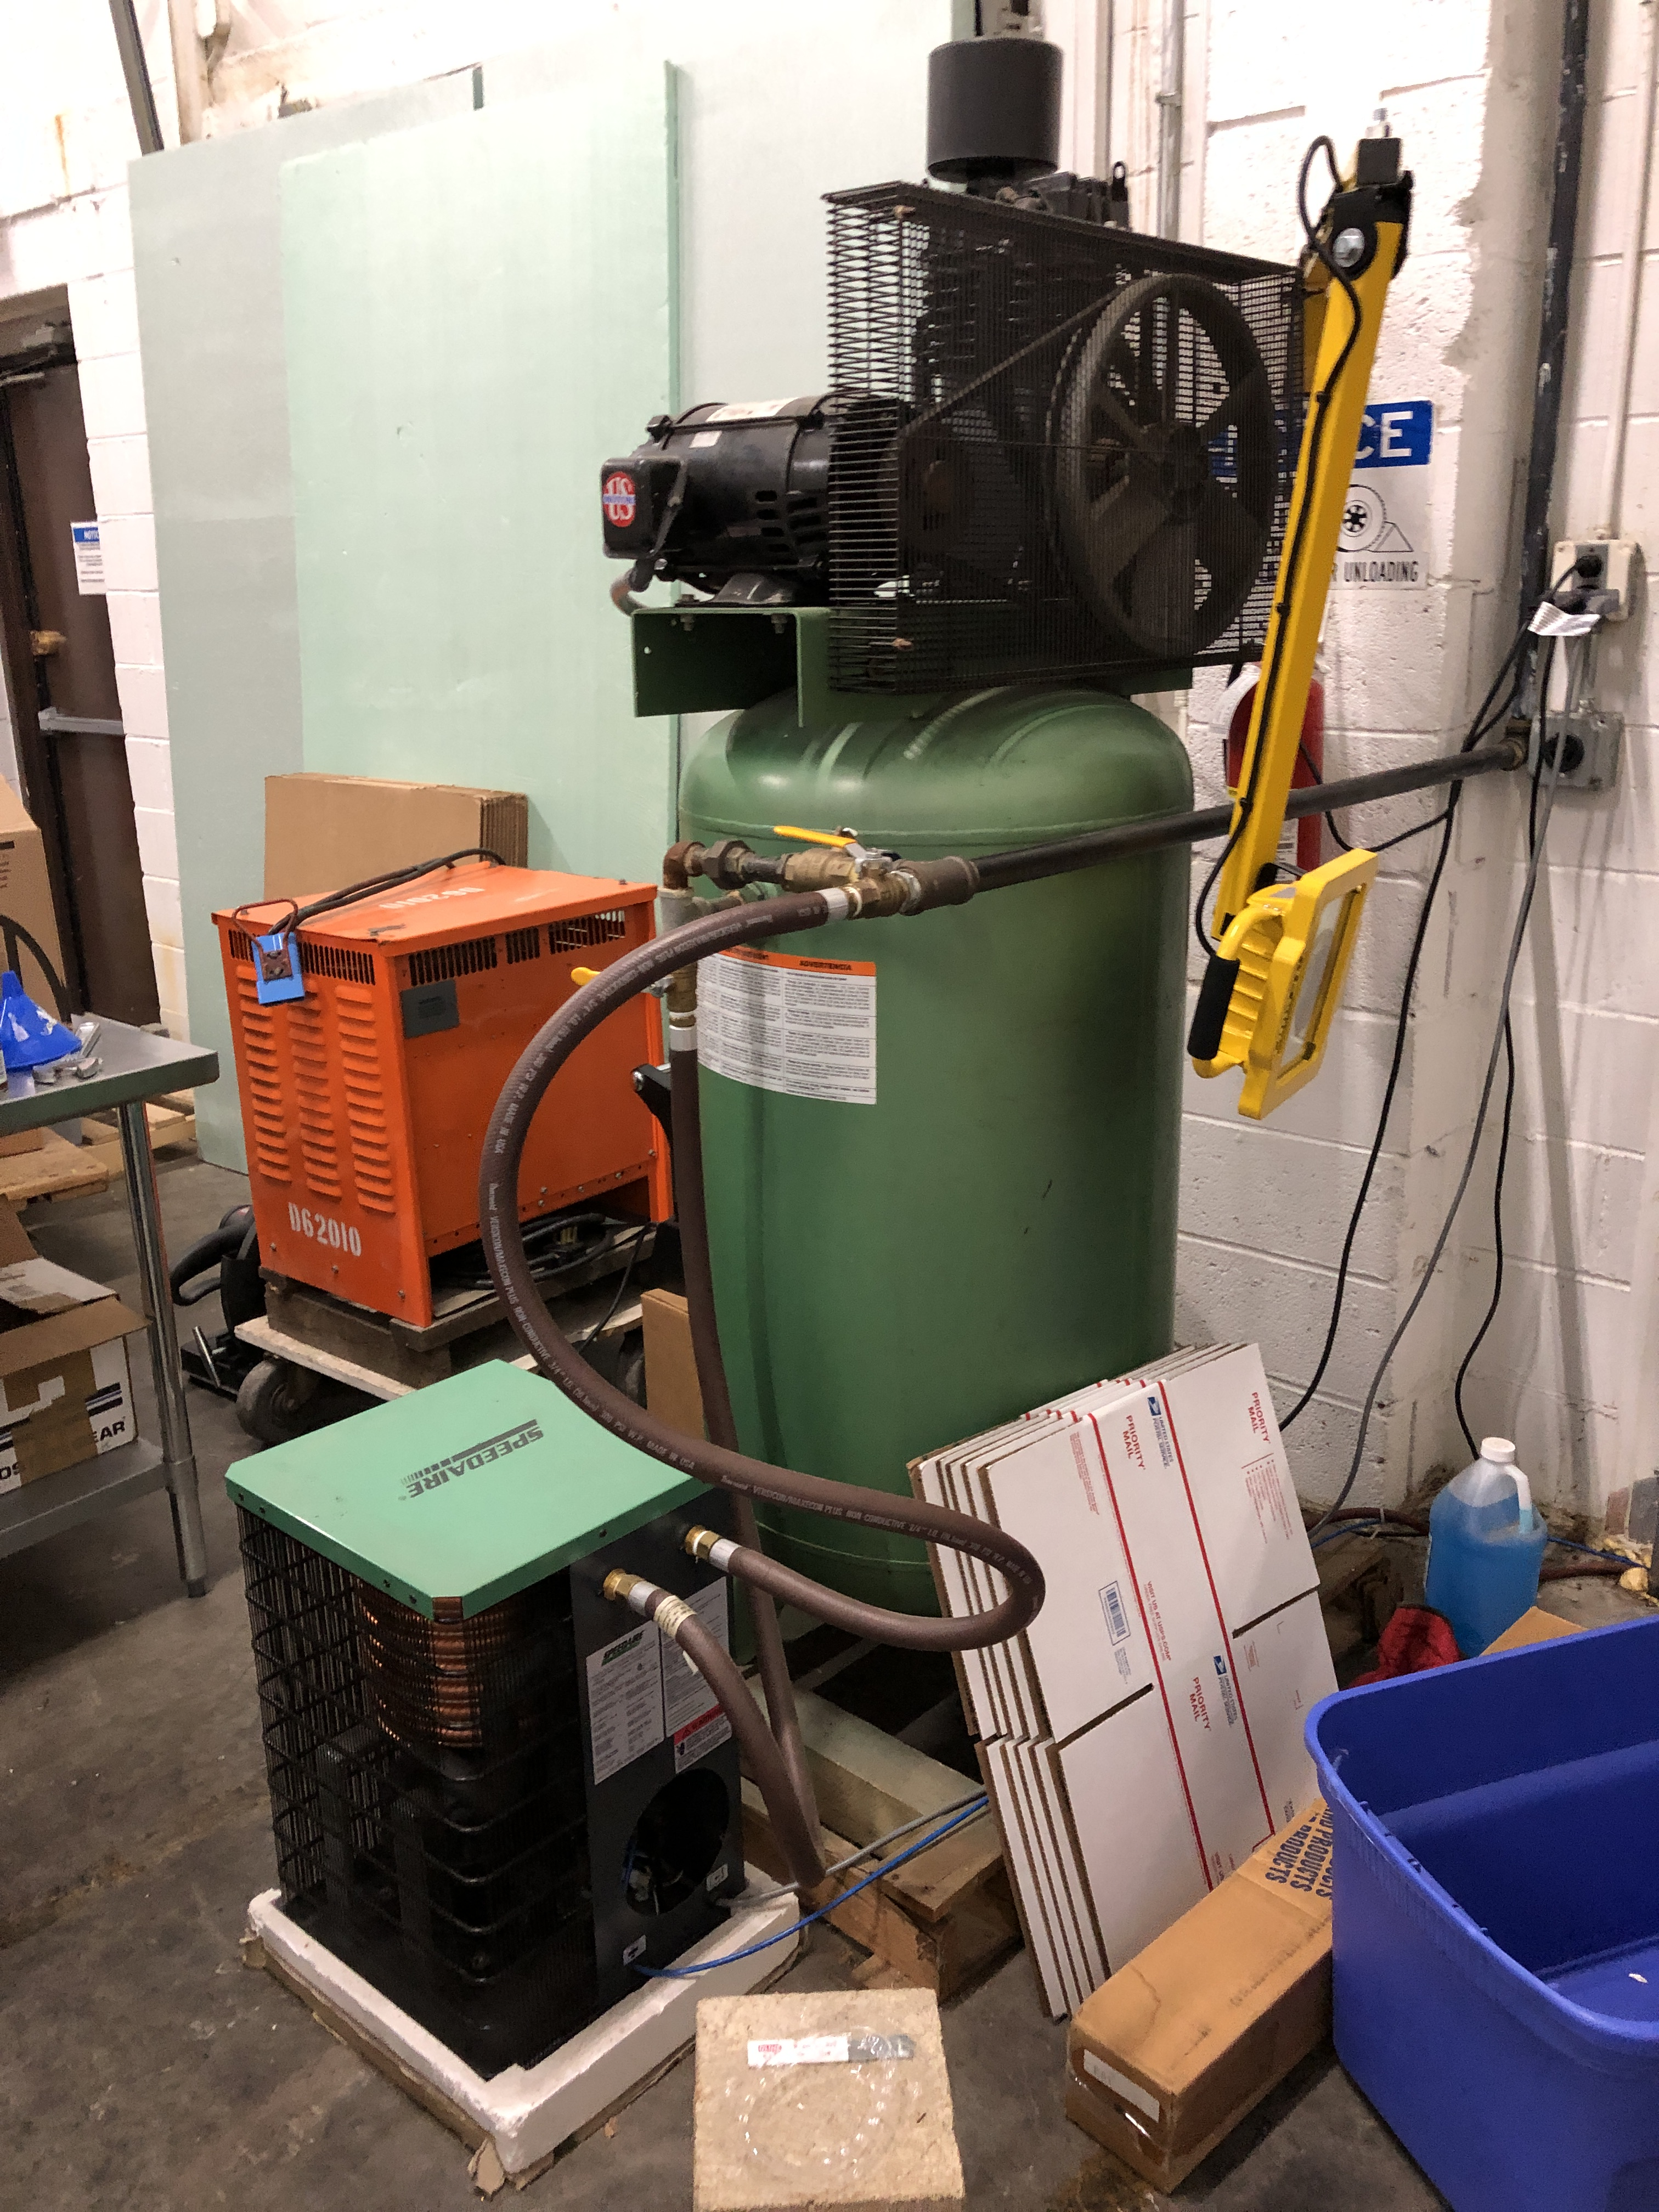 Lot 48 - Speedaire model 5f565 Air Compressor 35 SCFM at 100 psig with refrigerated cooler with R-134a